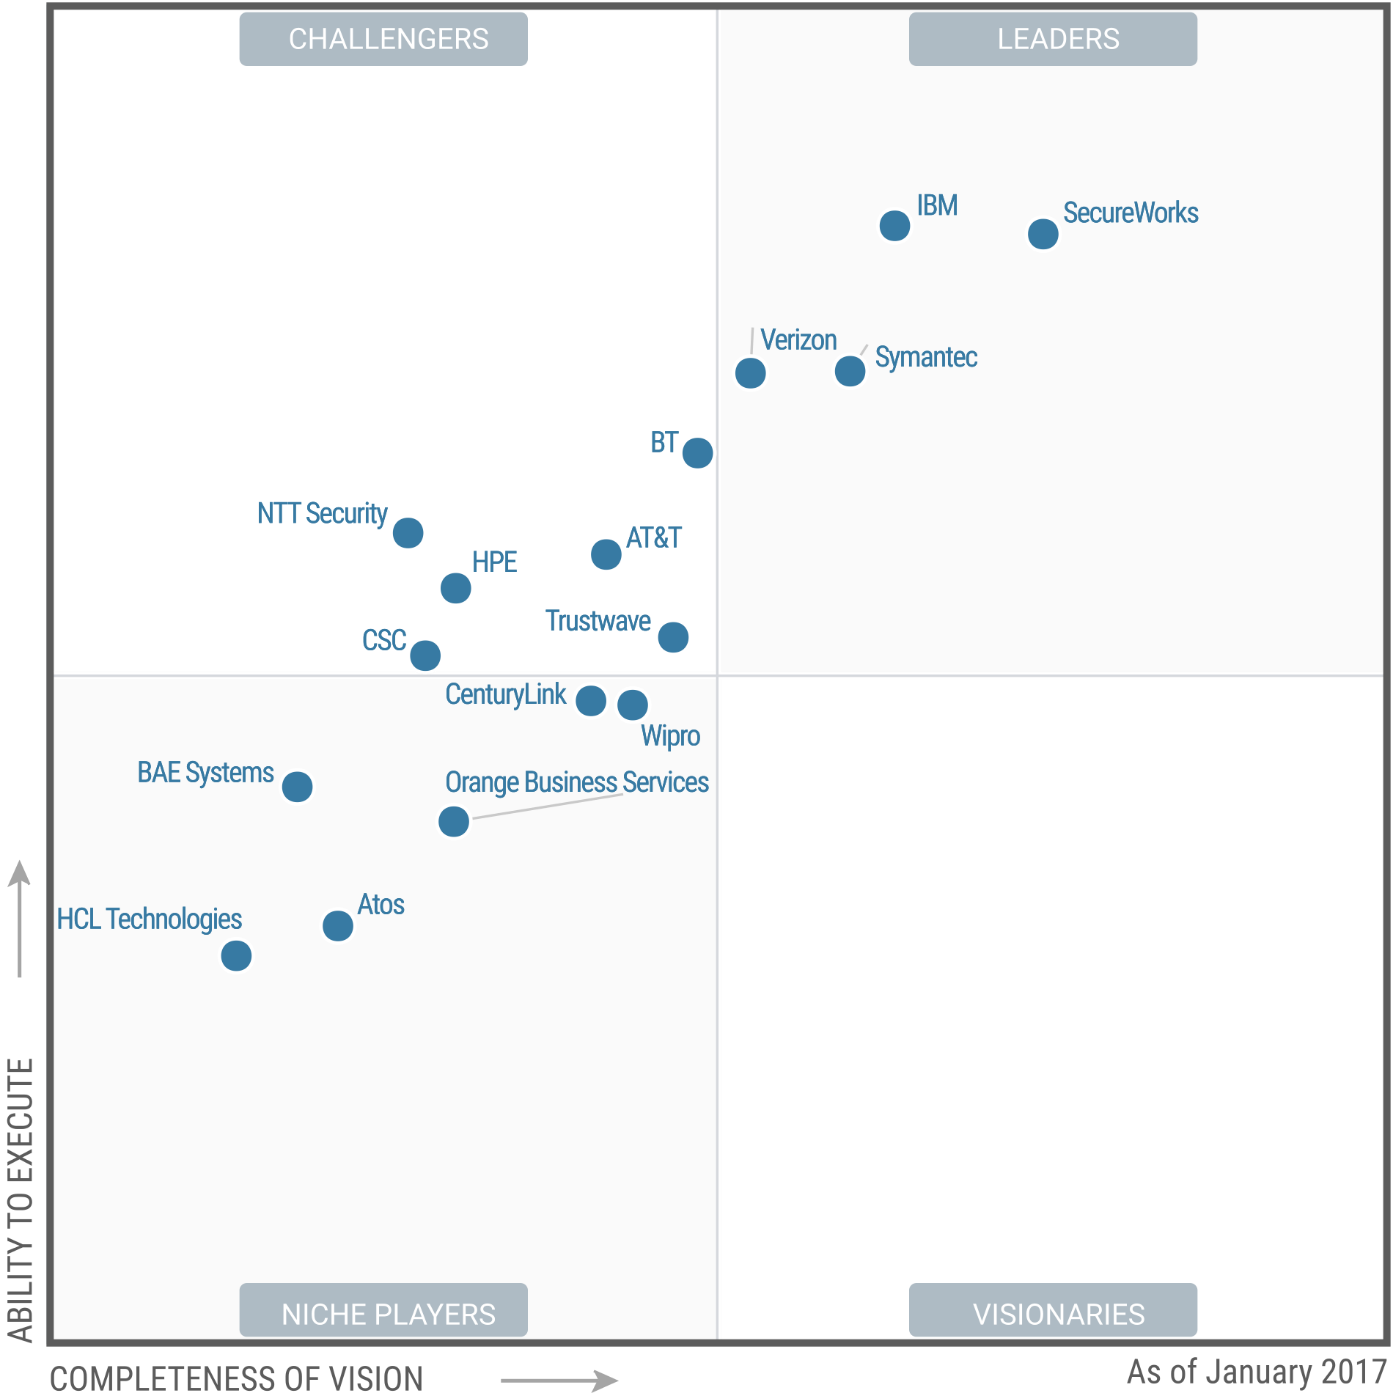 Magic Quadrant for Managed Security Services 2017 (G00299064)